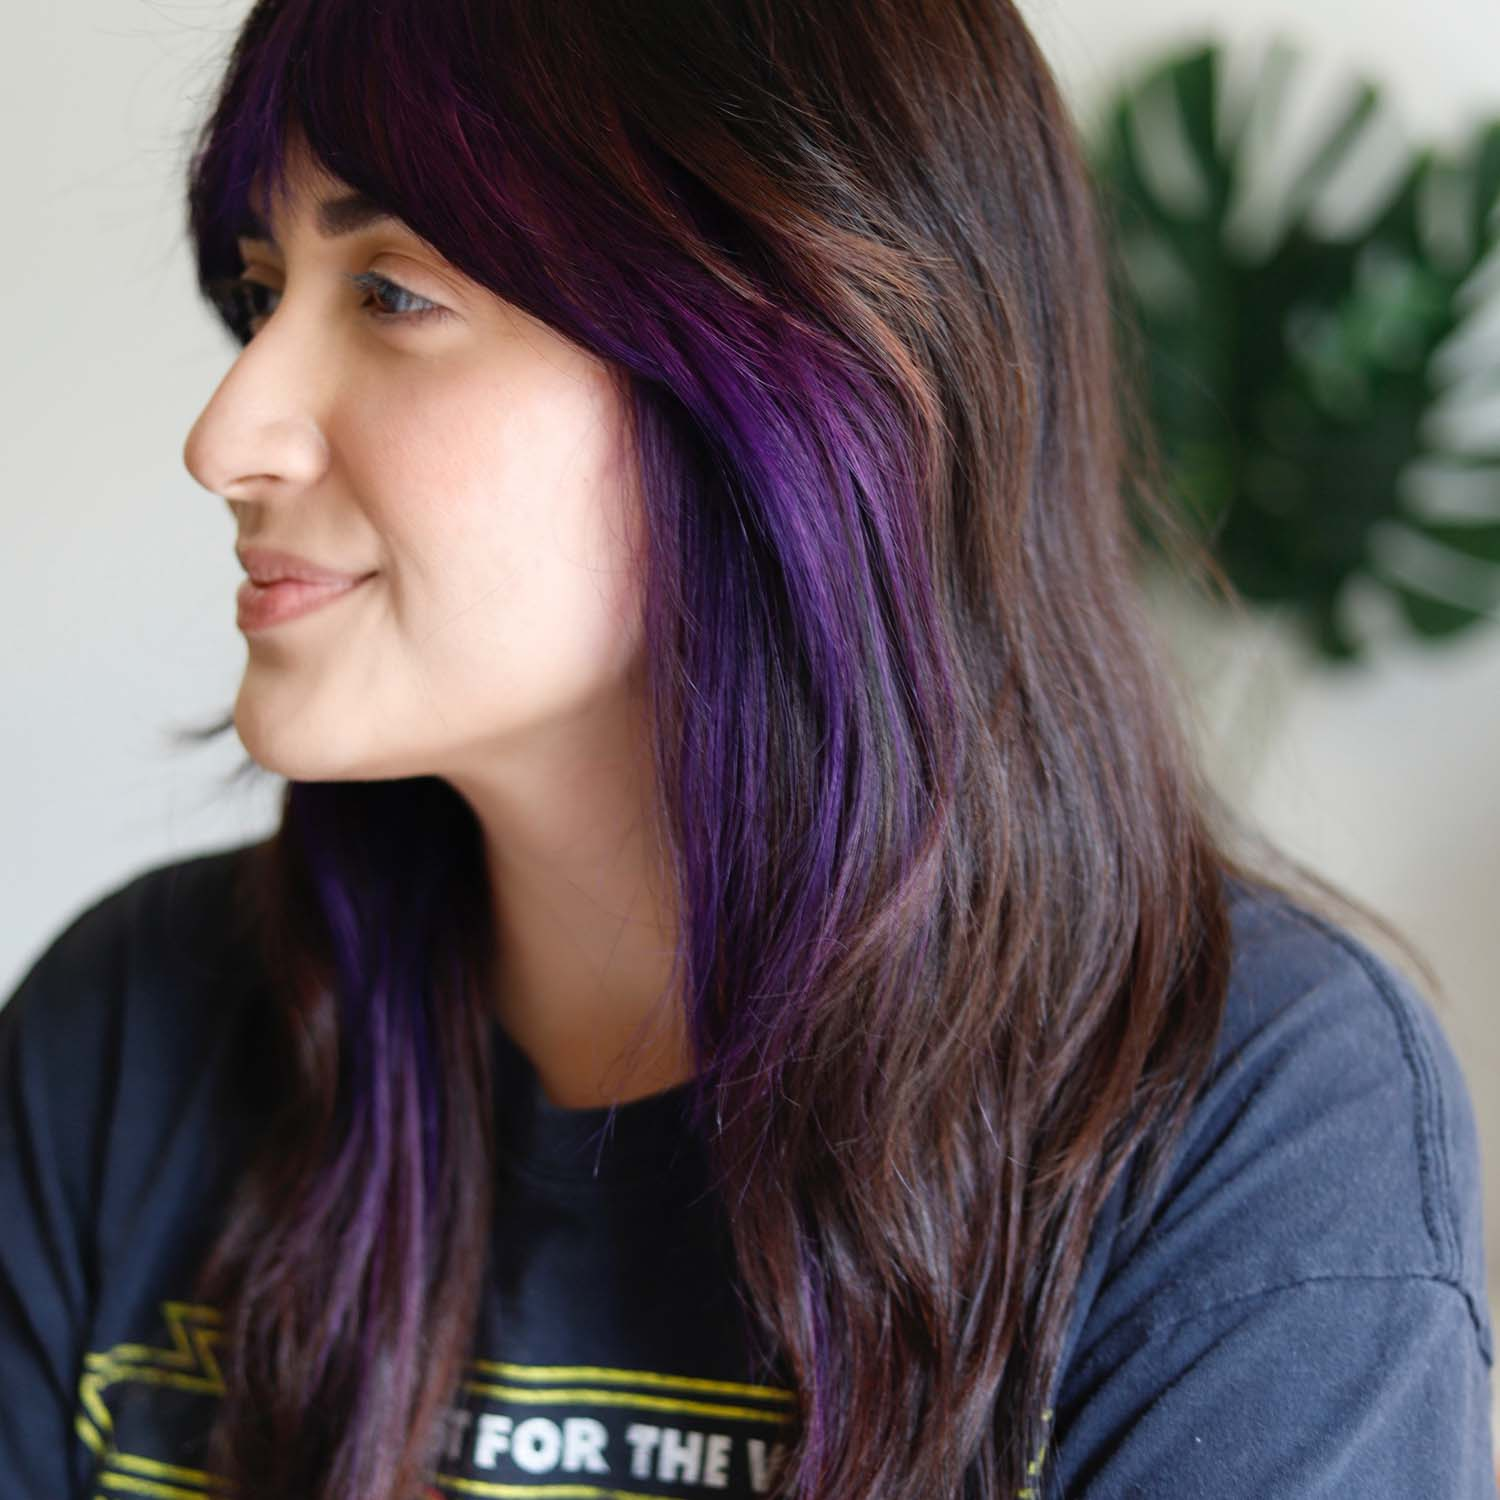 Person with brown hair and purple money piece in their hair.